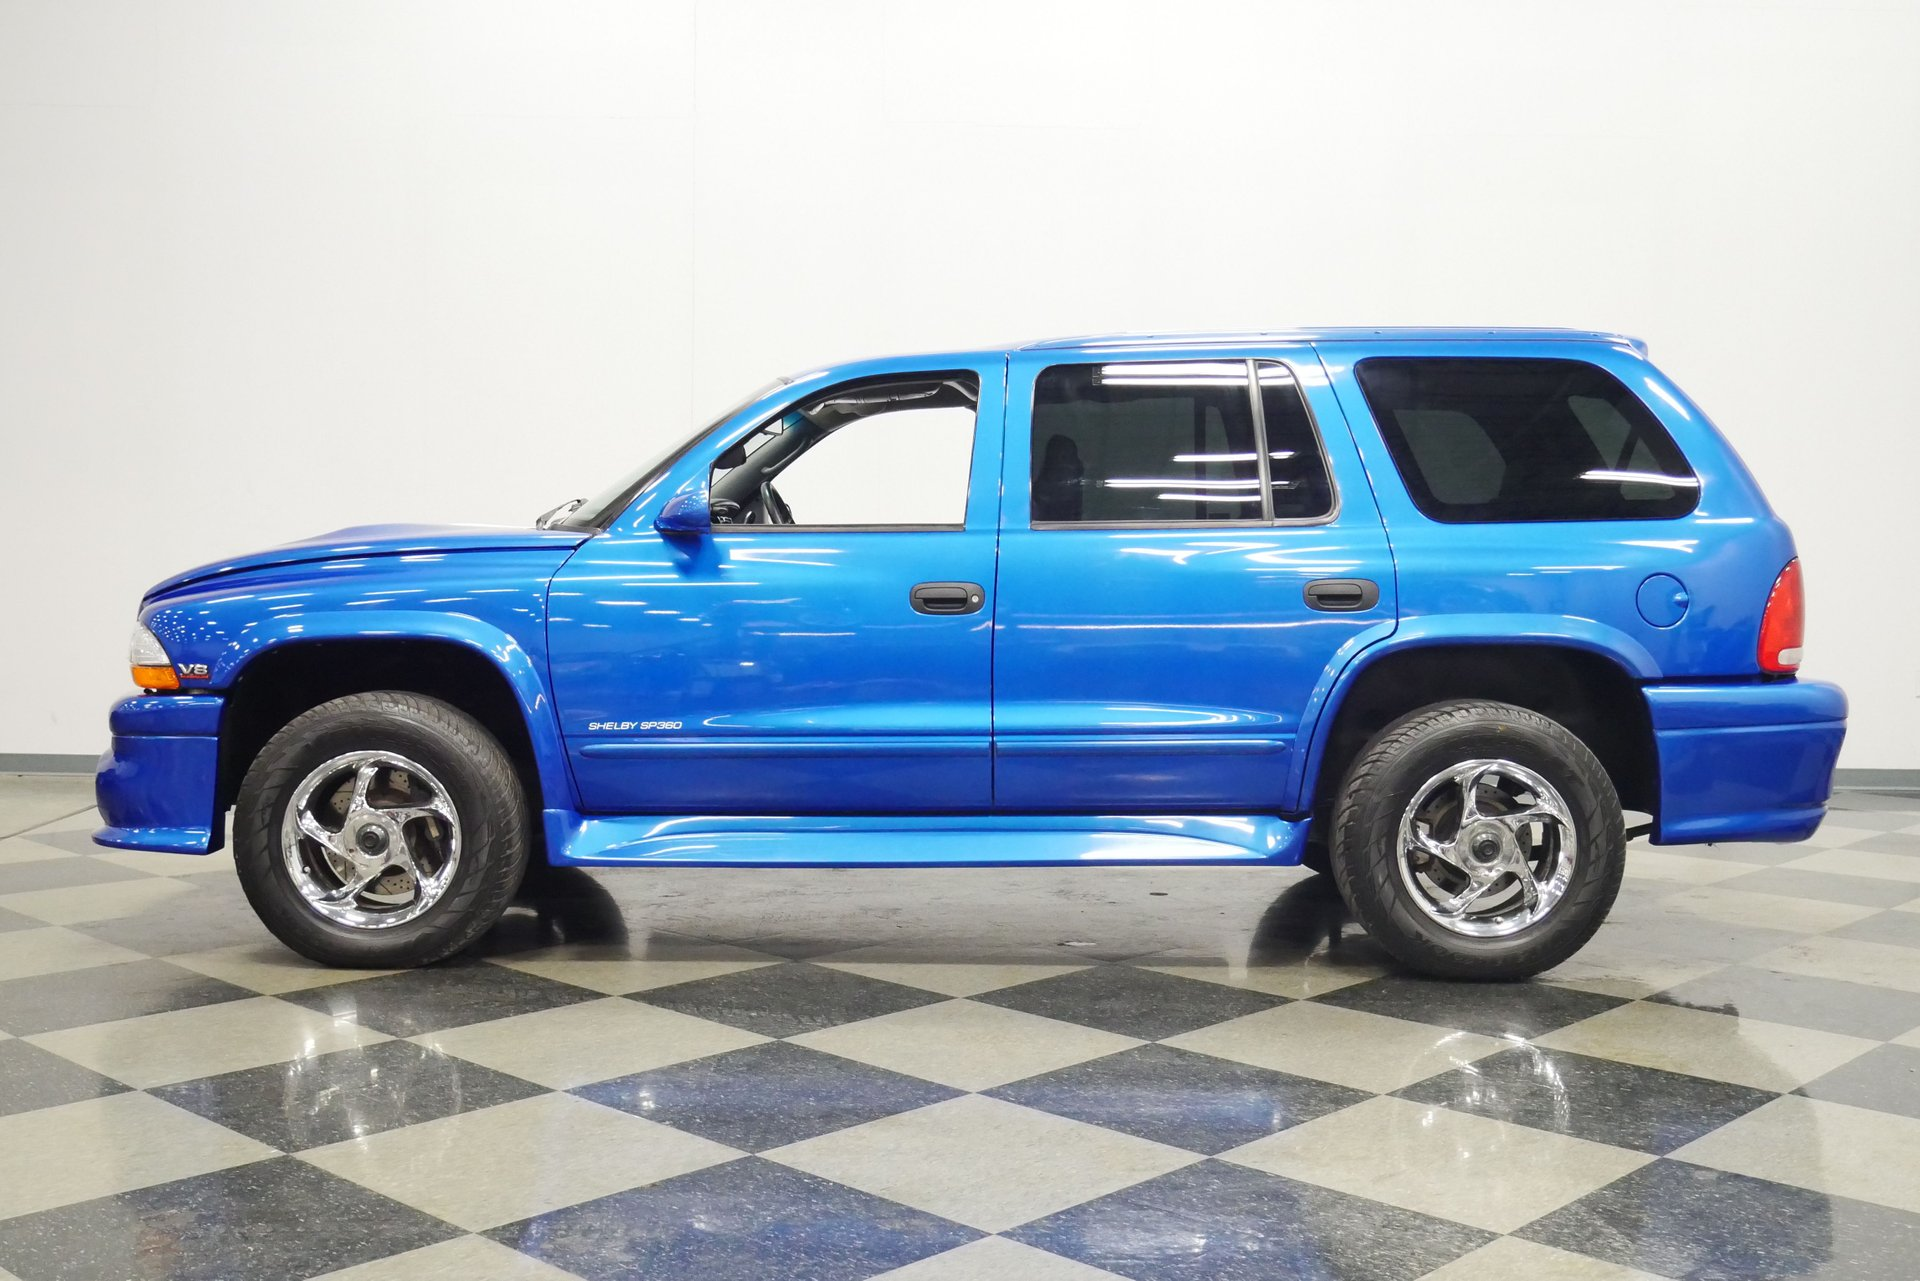 1999 dodge durango shelby sp360 supercharged